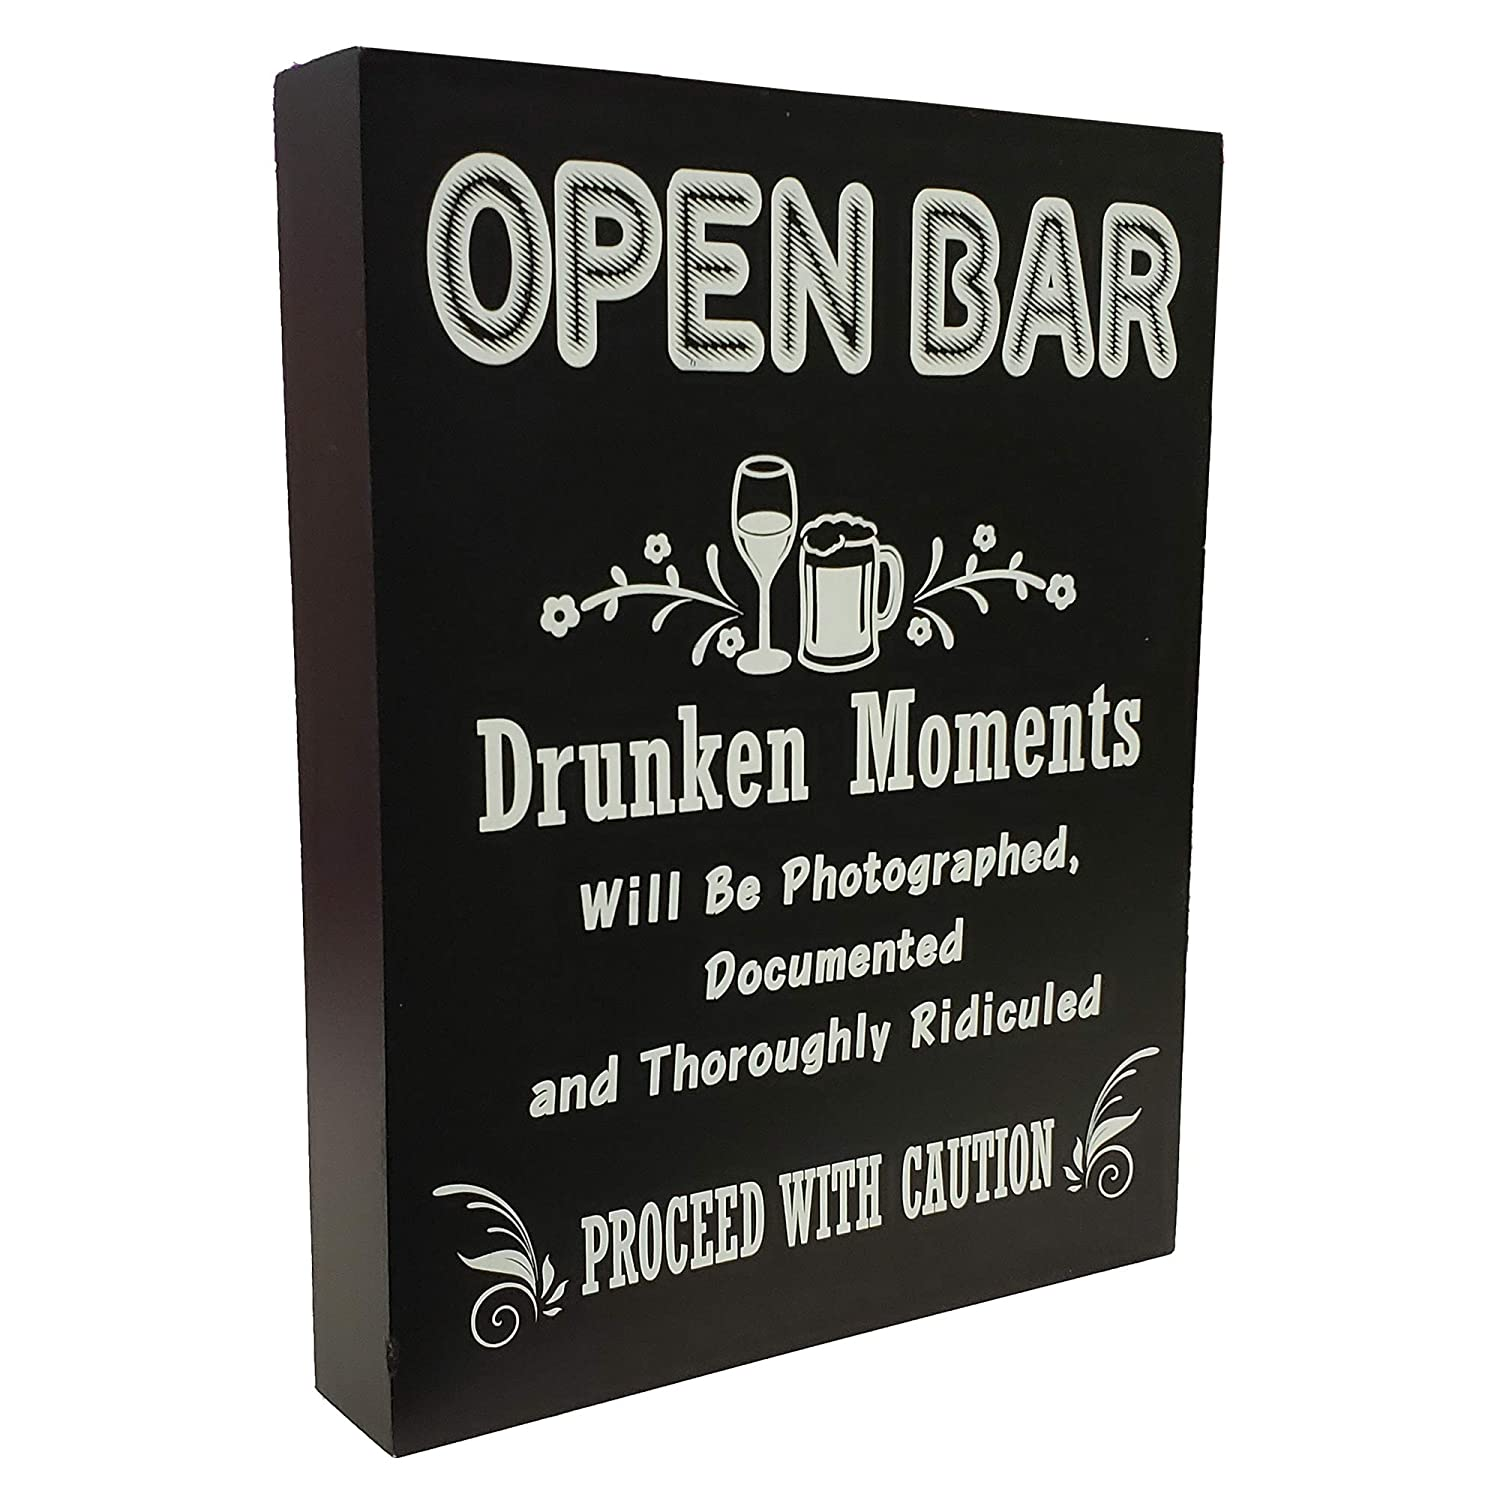 JennyGems - Open Bar - Drunken Moments Will Be Photographed Documented and Thoroughly Ridiculed Proceed with Caution - Wedding Ceremony and Reception Stand Up Sign - Birthday Anniversary Party,